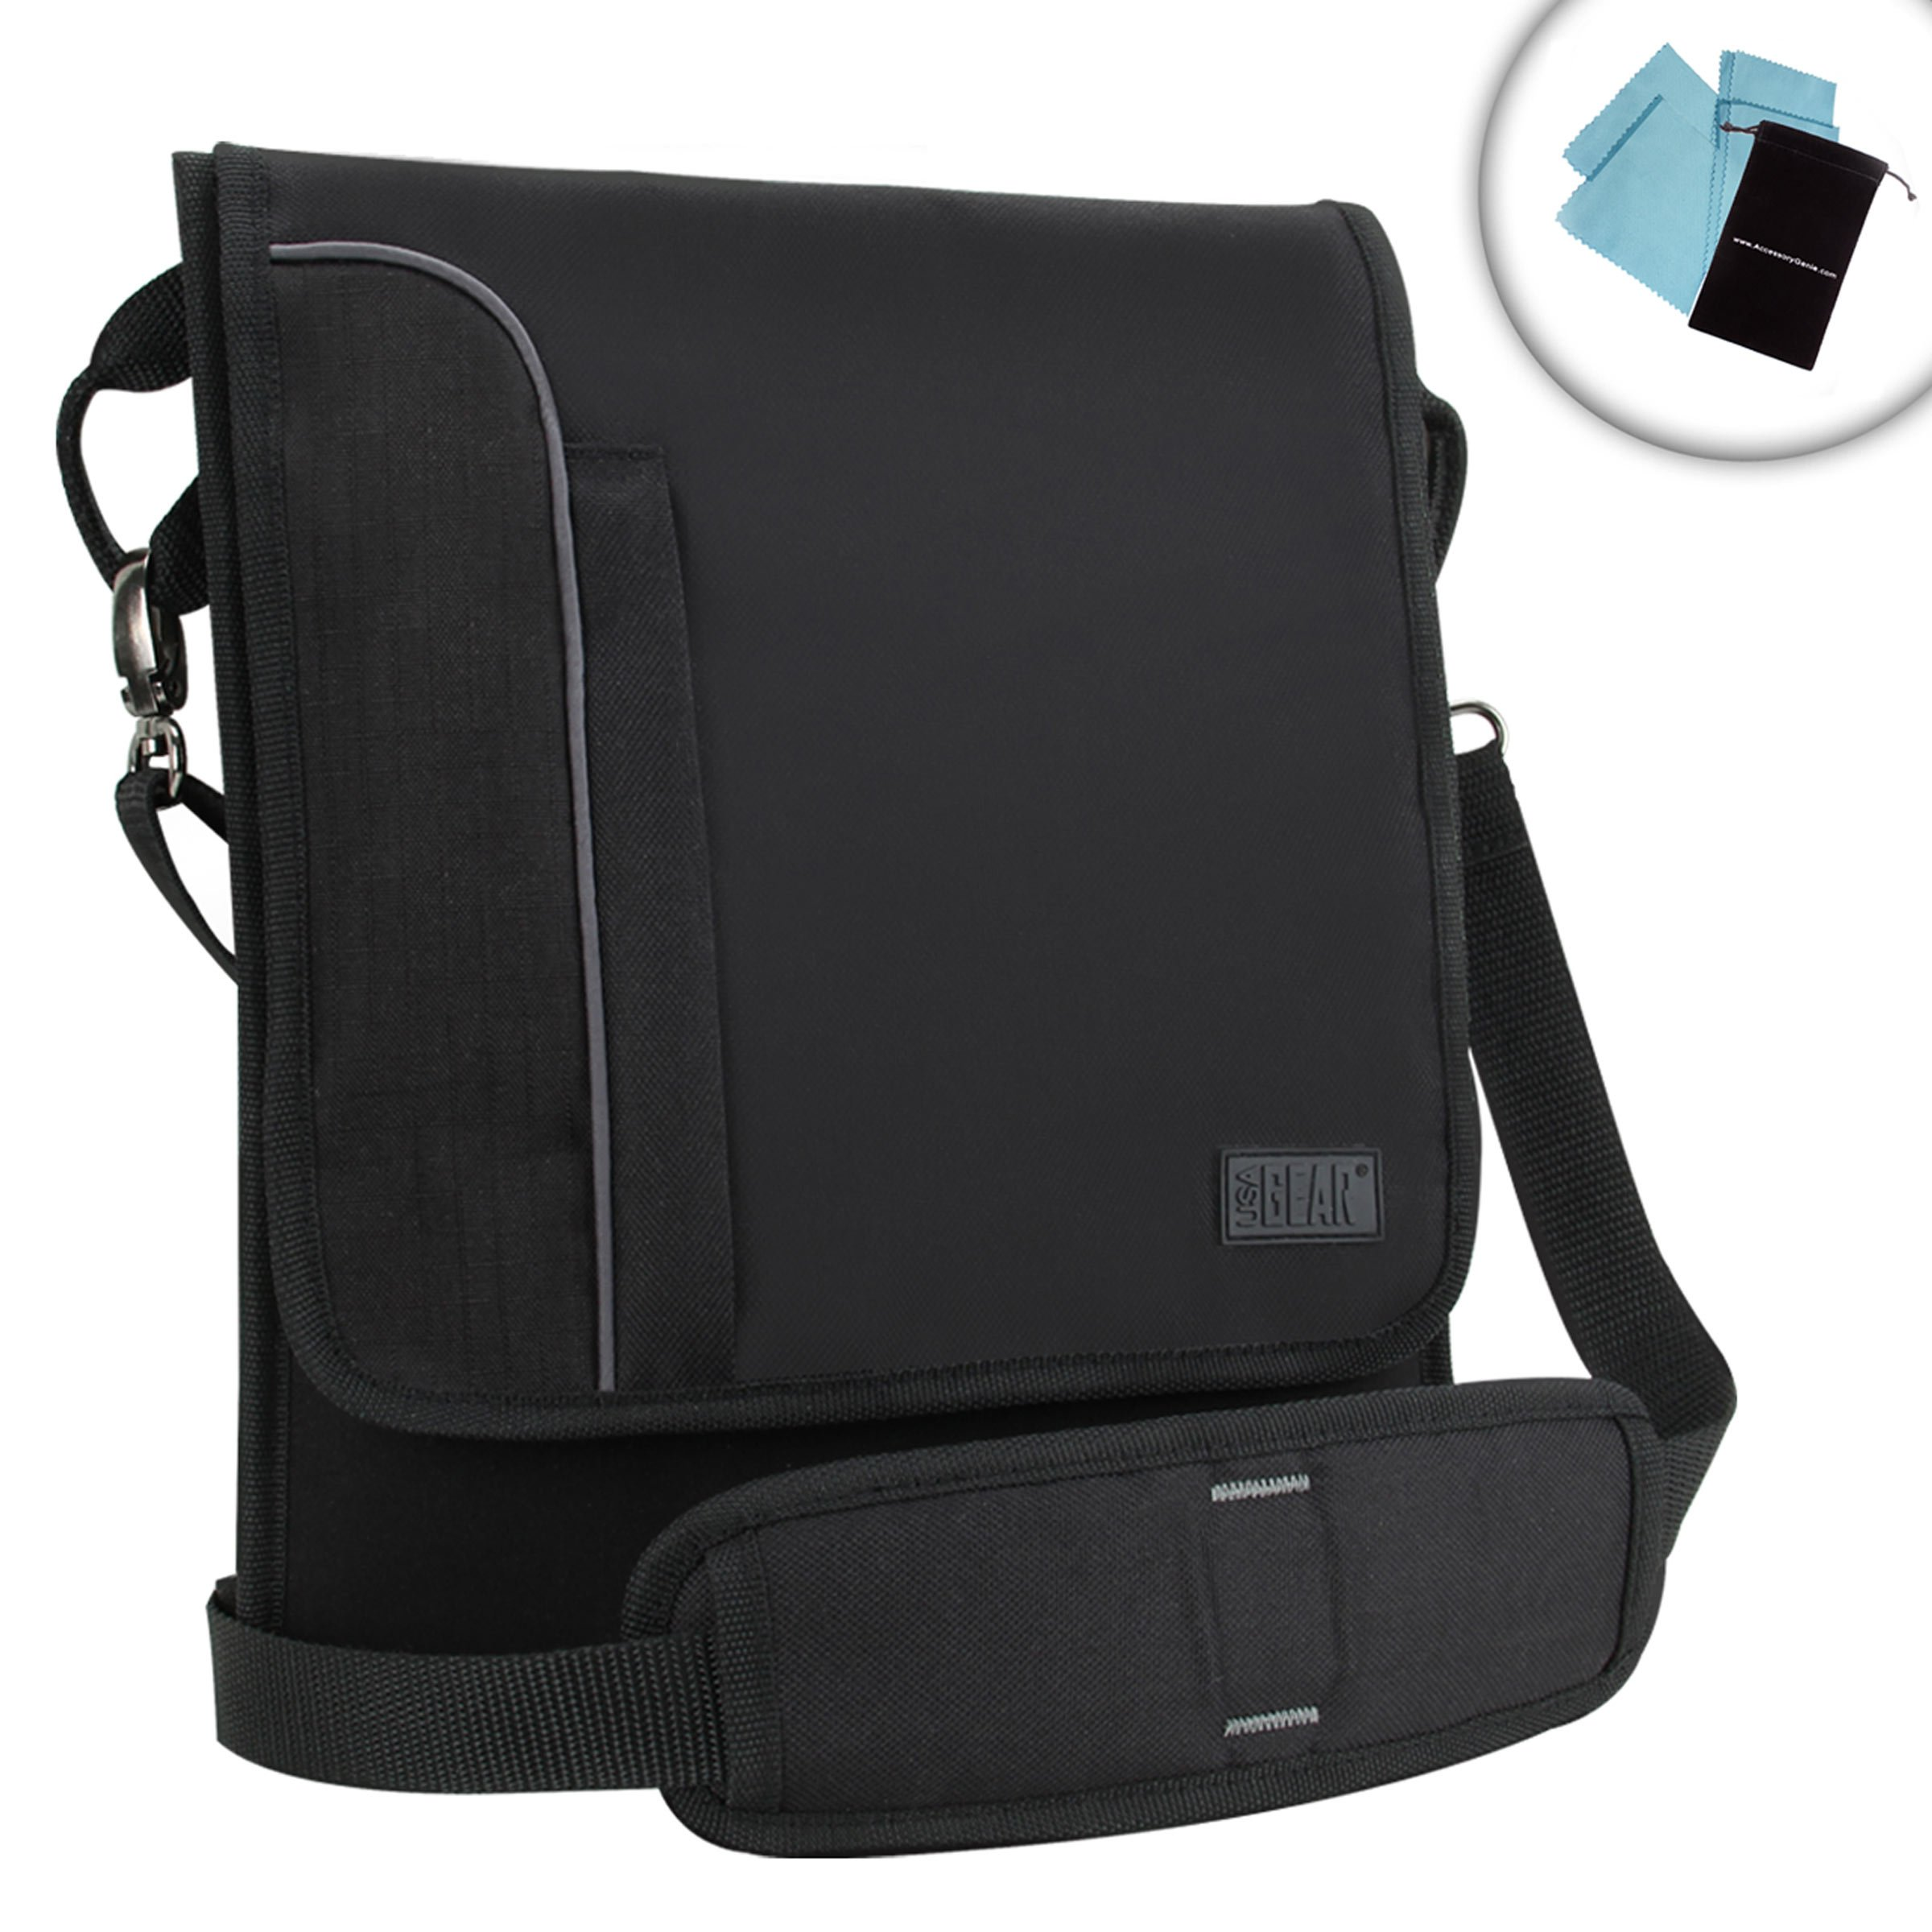 USA Gear Shoulder Sling 10.1-Inch Galaxy Tab A Tablet Case Messenger Bag S8 (Black) - Sleek & Slim Sleeve Design with Adjustable Carrying Strap & Two Pockets for 7'' and 10'' Samsung Tablets